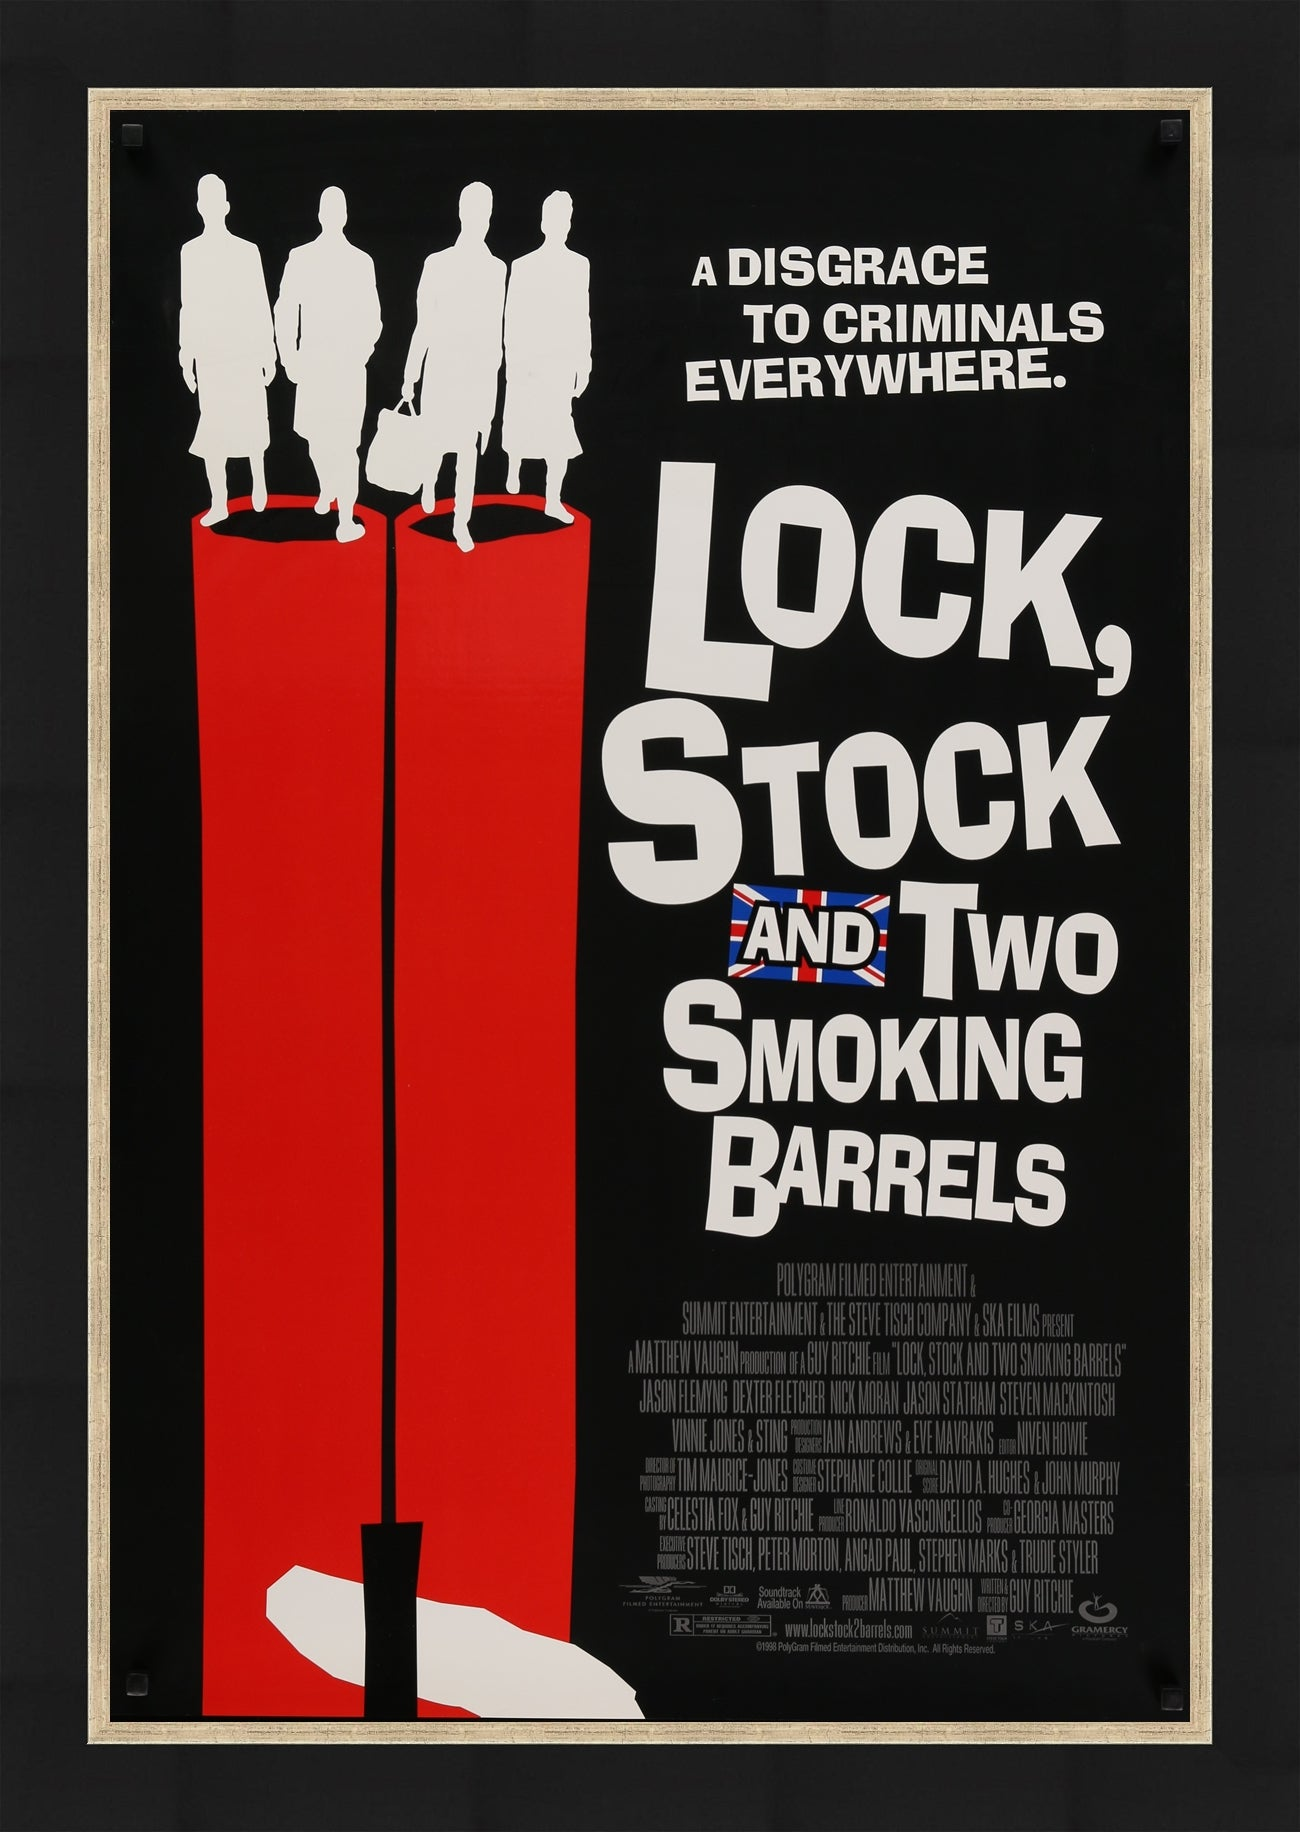 An original movie poster for Guy Ritchie's Lock, Stock and Two Smoking Barrels